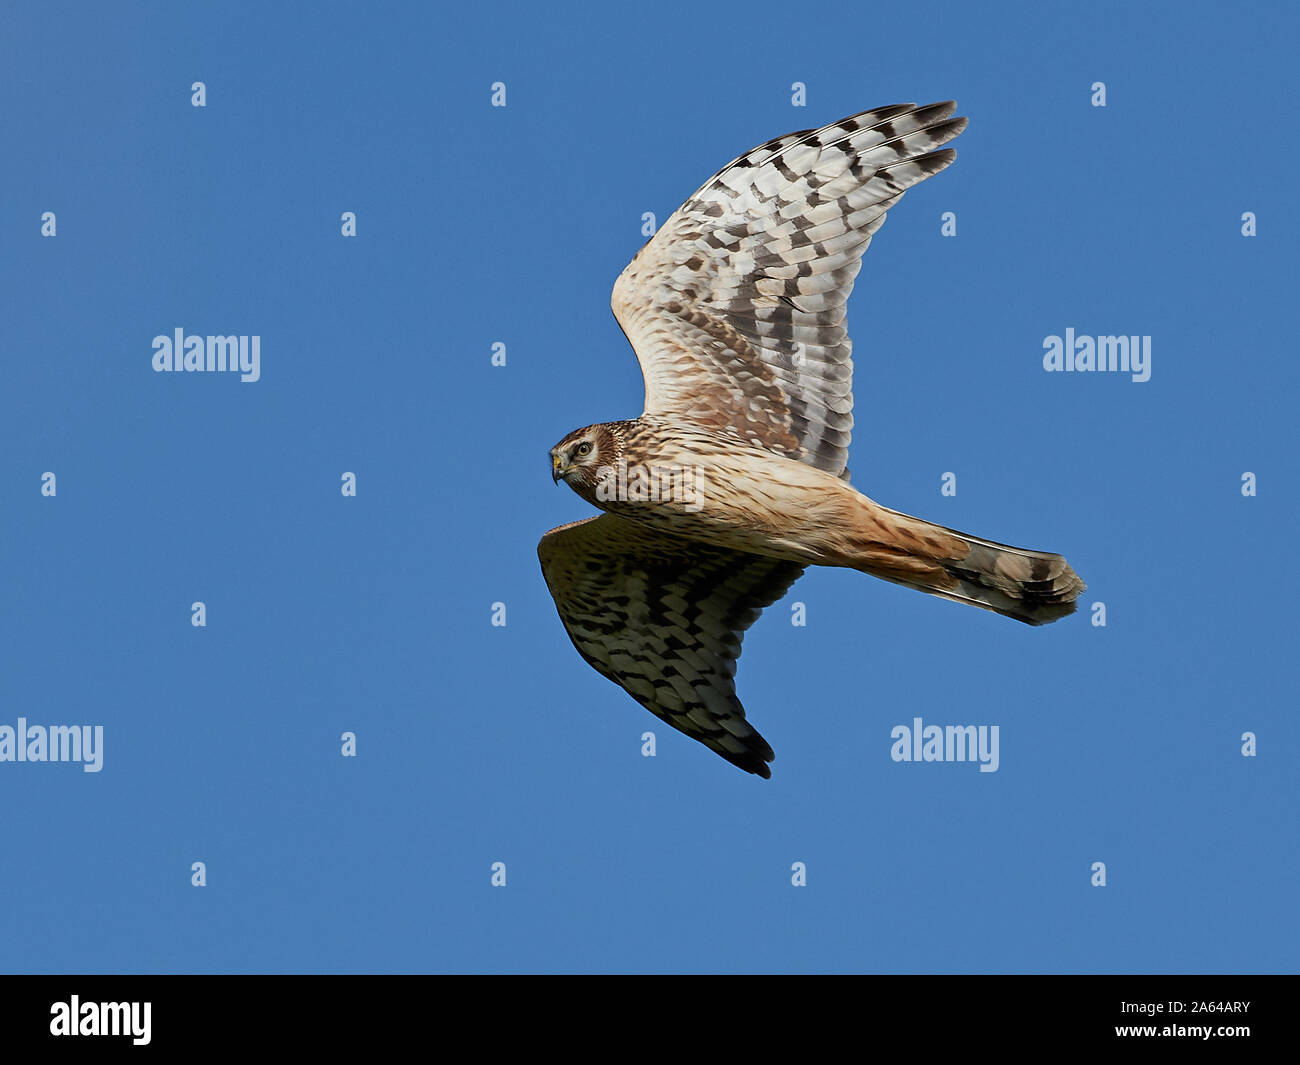 Hen harrier in flight with blue skies in the background Stock Photo